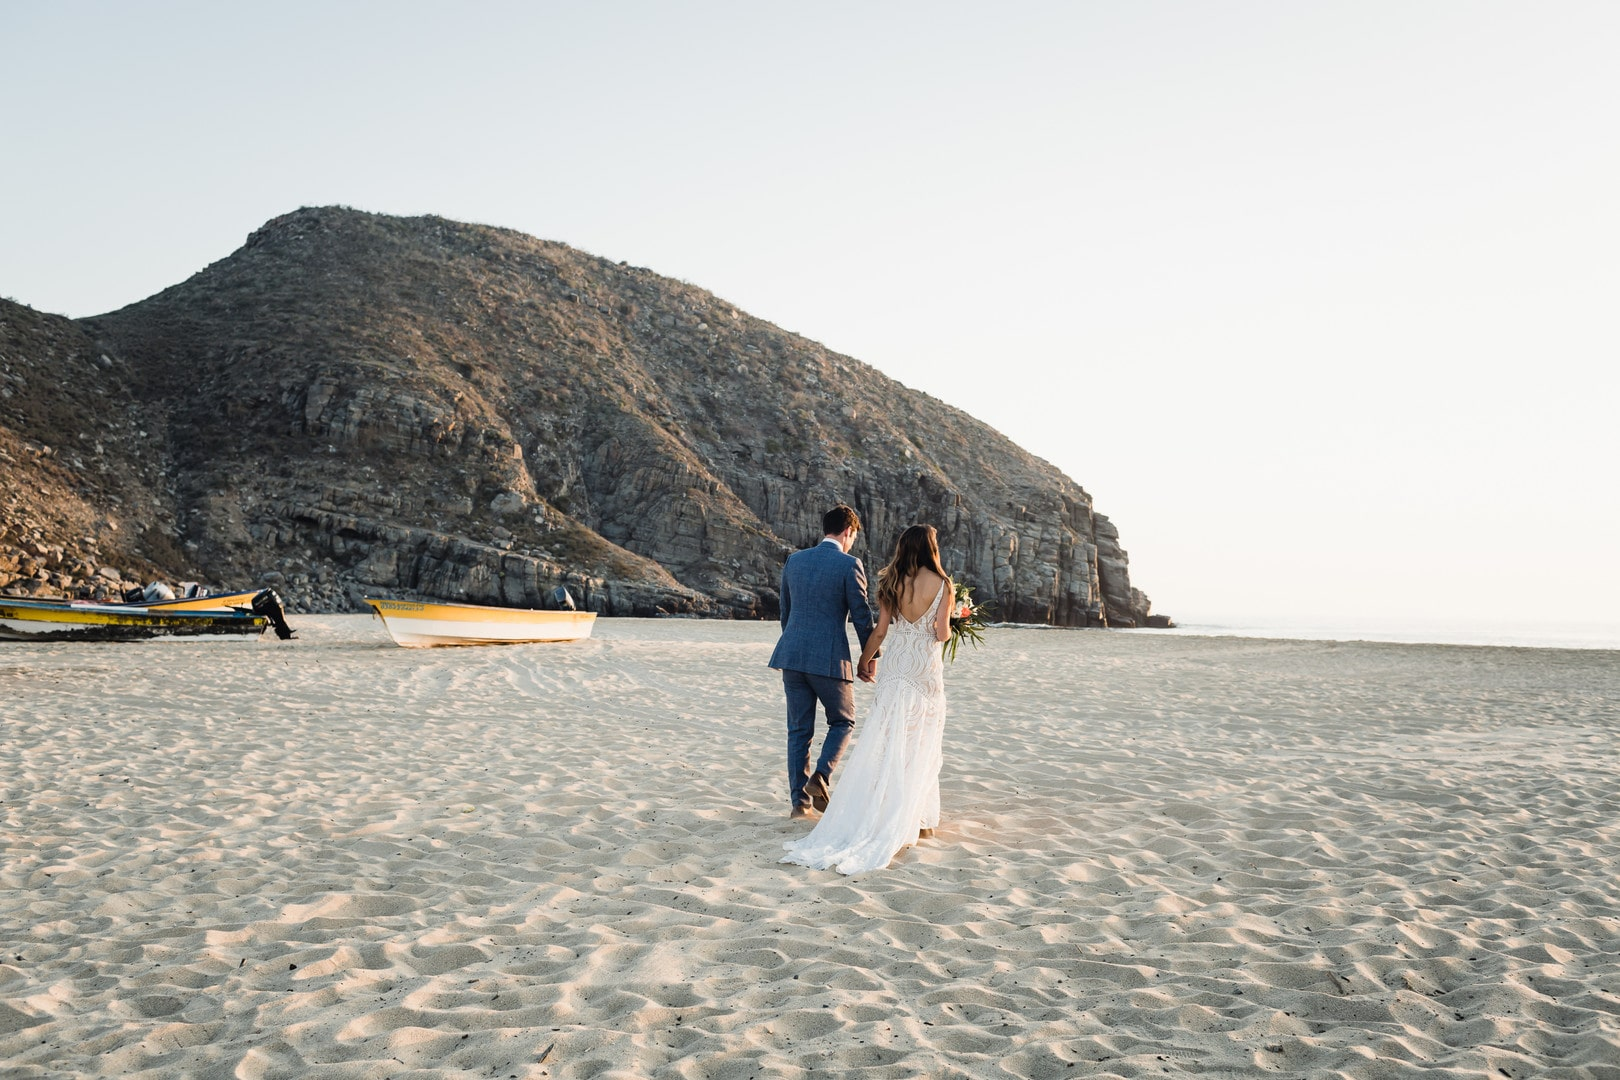 Janan & Shane's Intimate Todos Santos, Baja Wedding, Photography by giannakeiko.com for Destination Wedding Blog Adriana Weddings